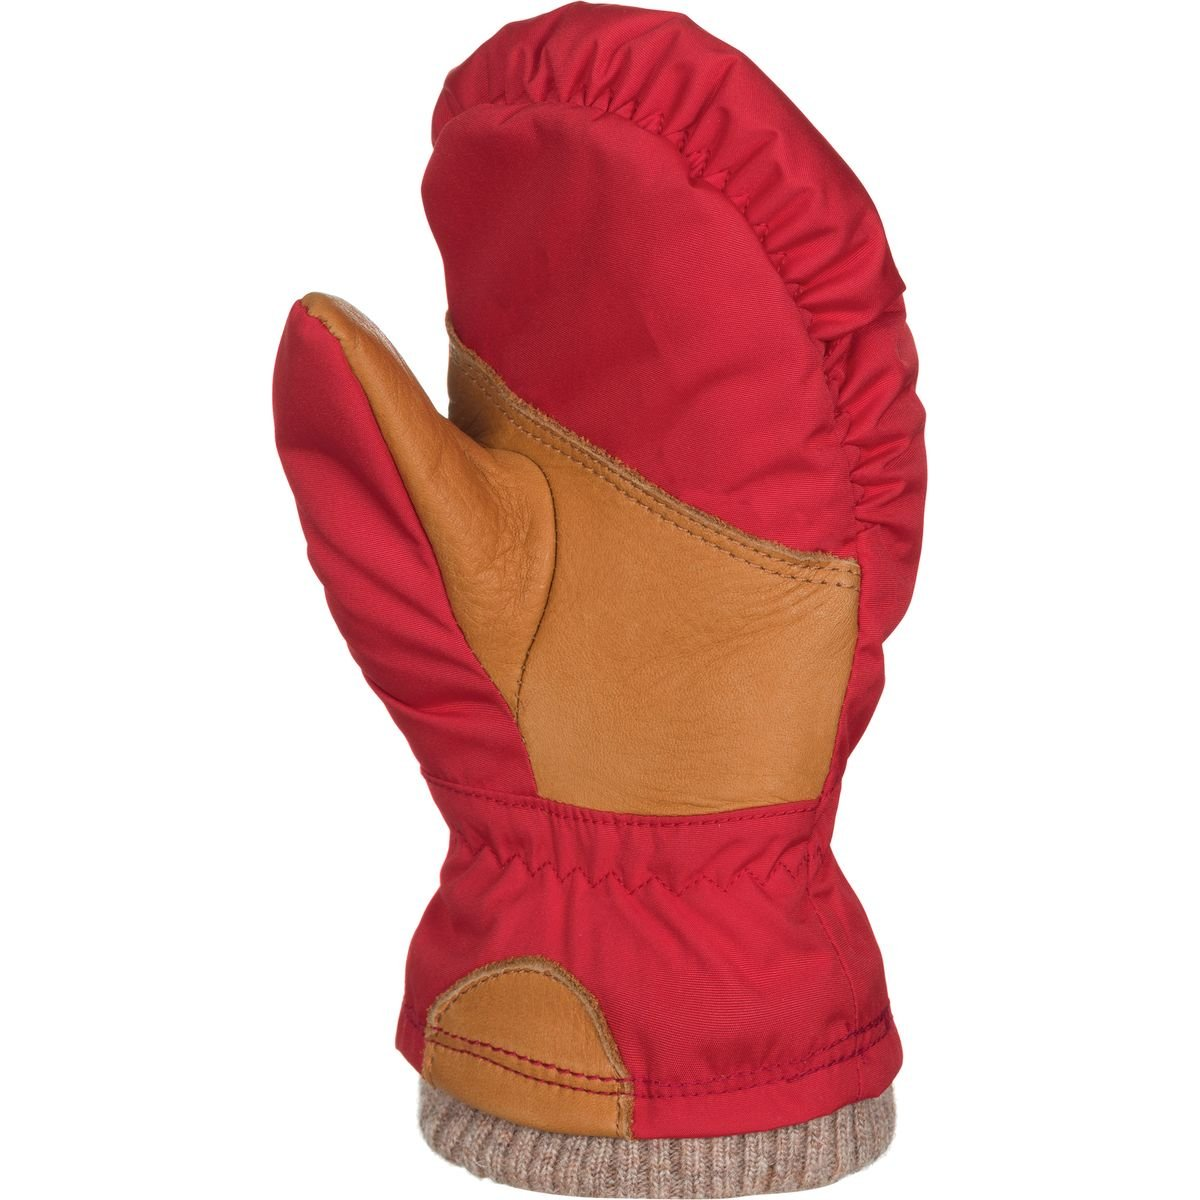 Hestra Warm Mitten for Kids Youth My First Basic Cold Weather Winter Mittens